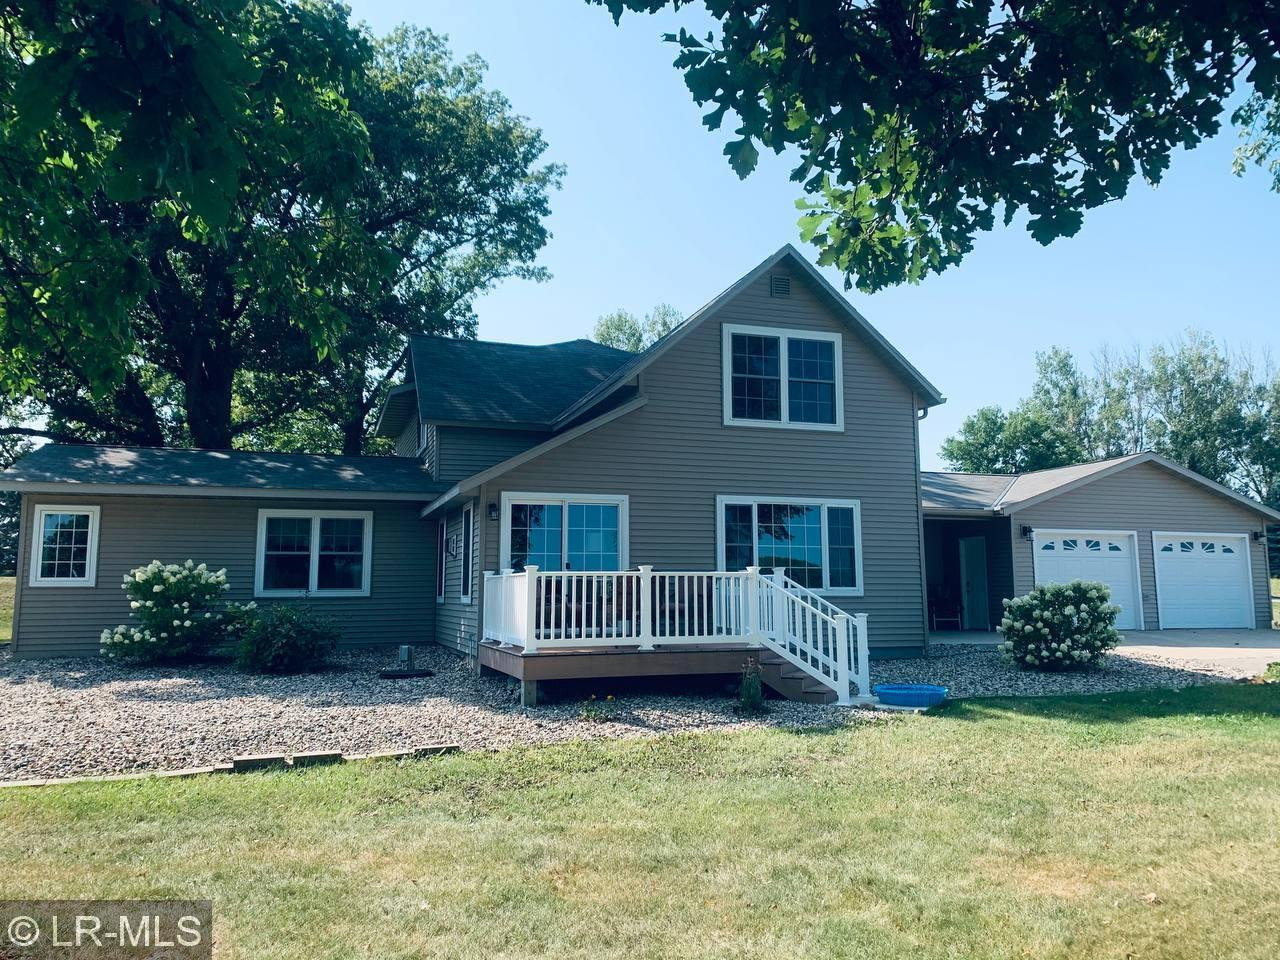 2-Story House In Eagle Bend